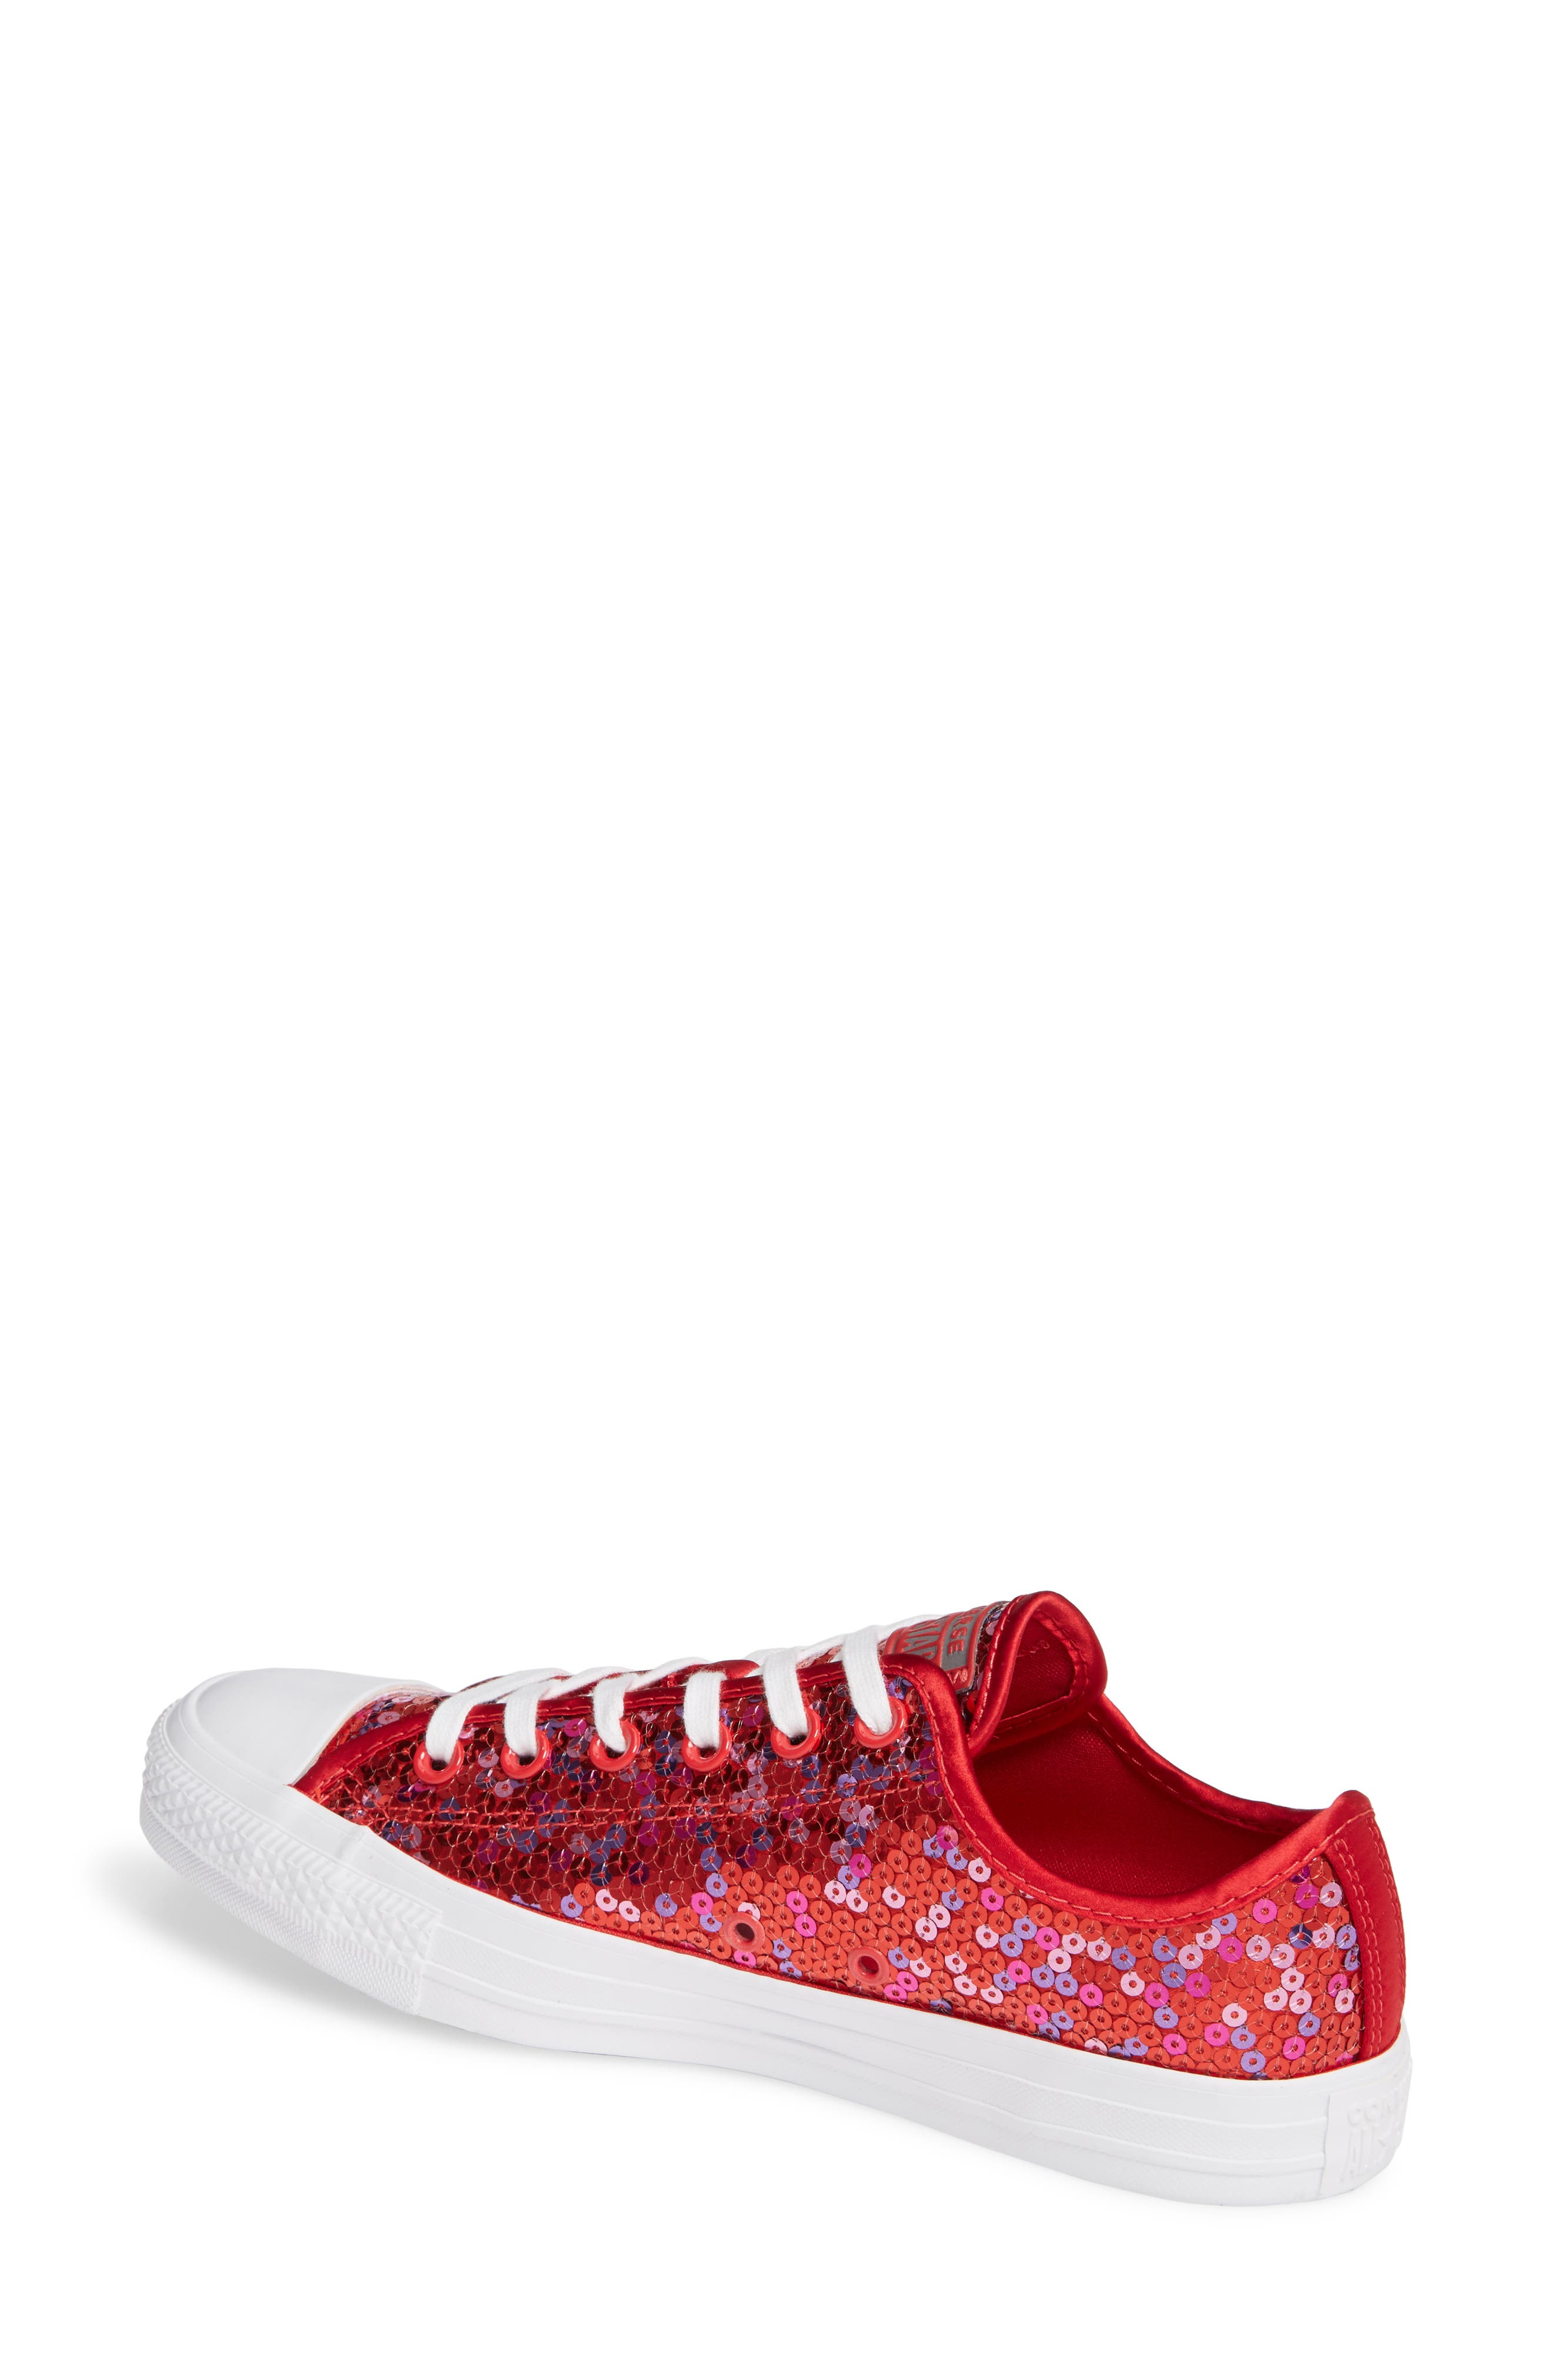 Chuck Taylor<sup>®</sup> All Star<sup>®</sup> Sequin Low Top Sneaker,                             Alternate thumbnail 2, color,                             RED CHERRY SEQUINS